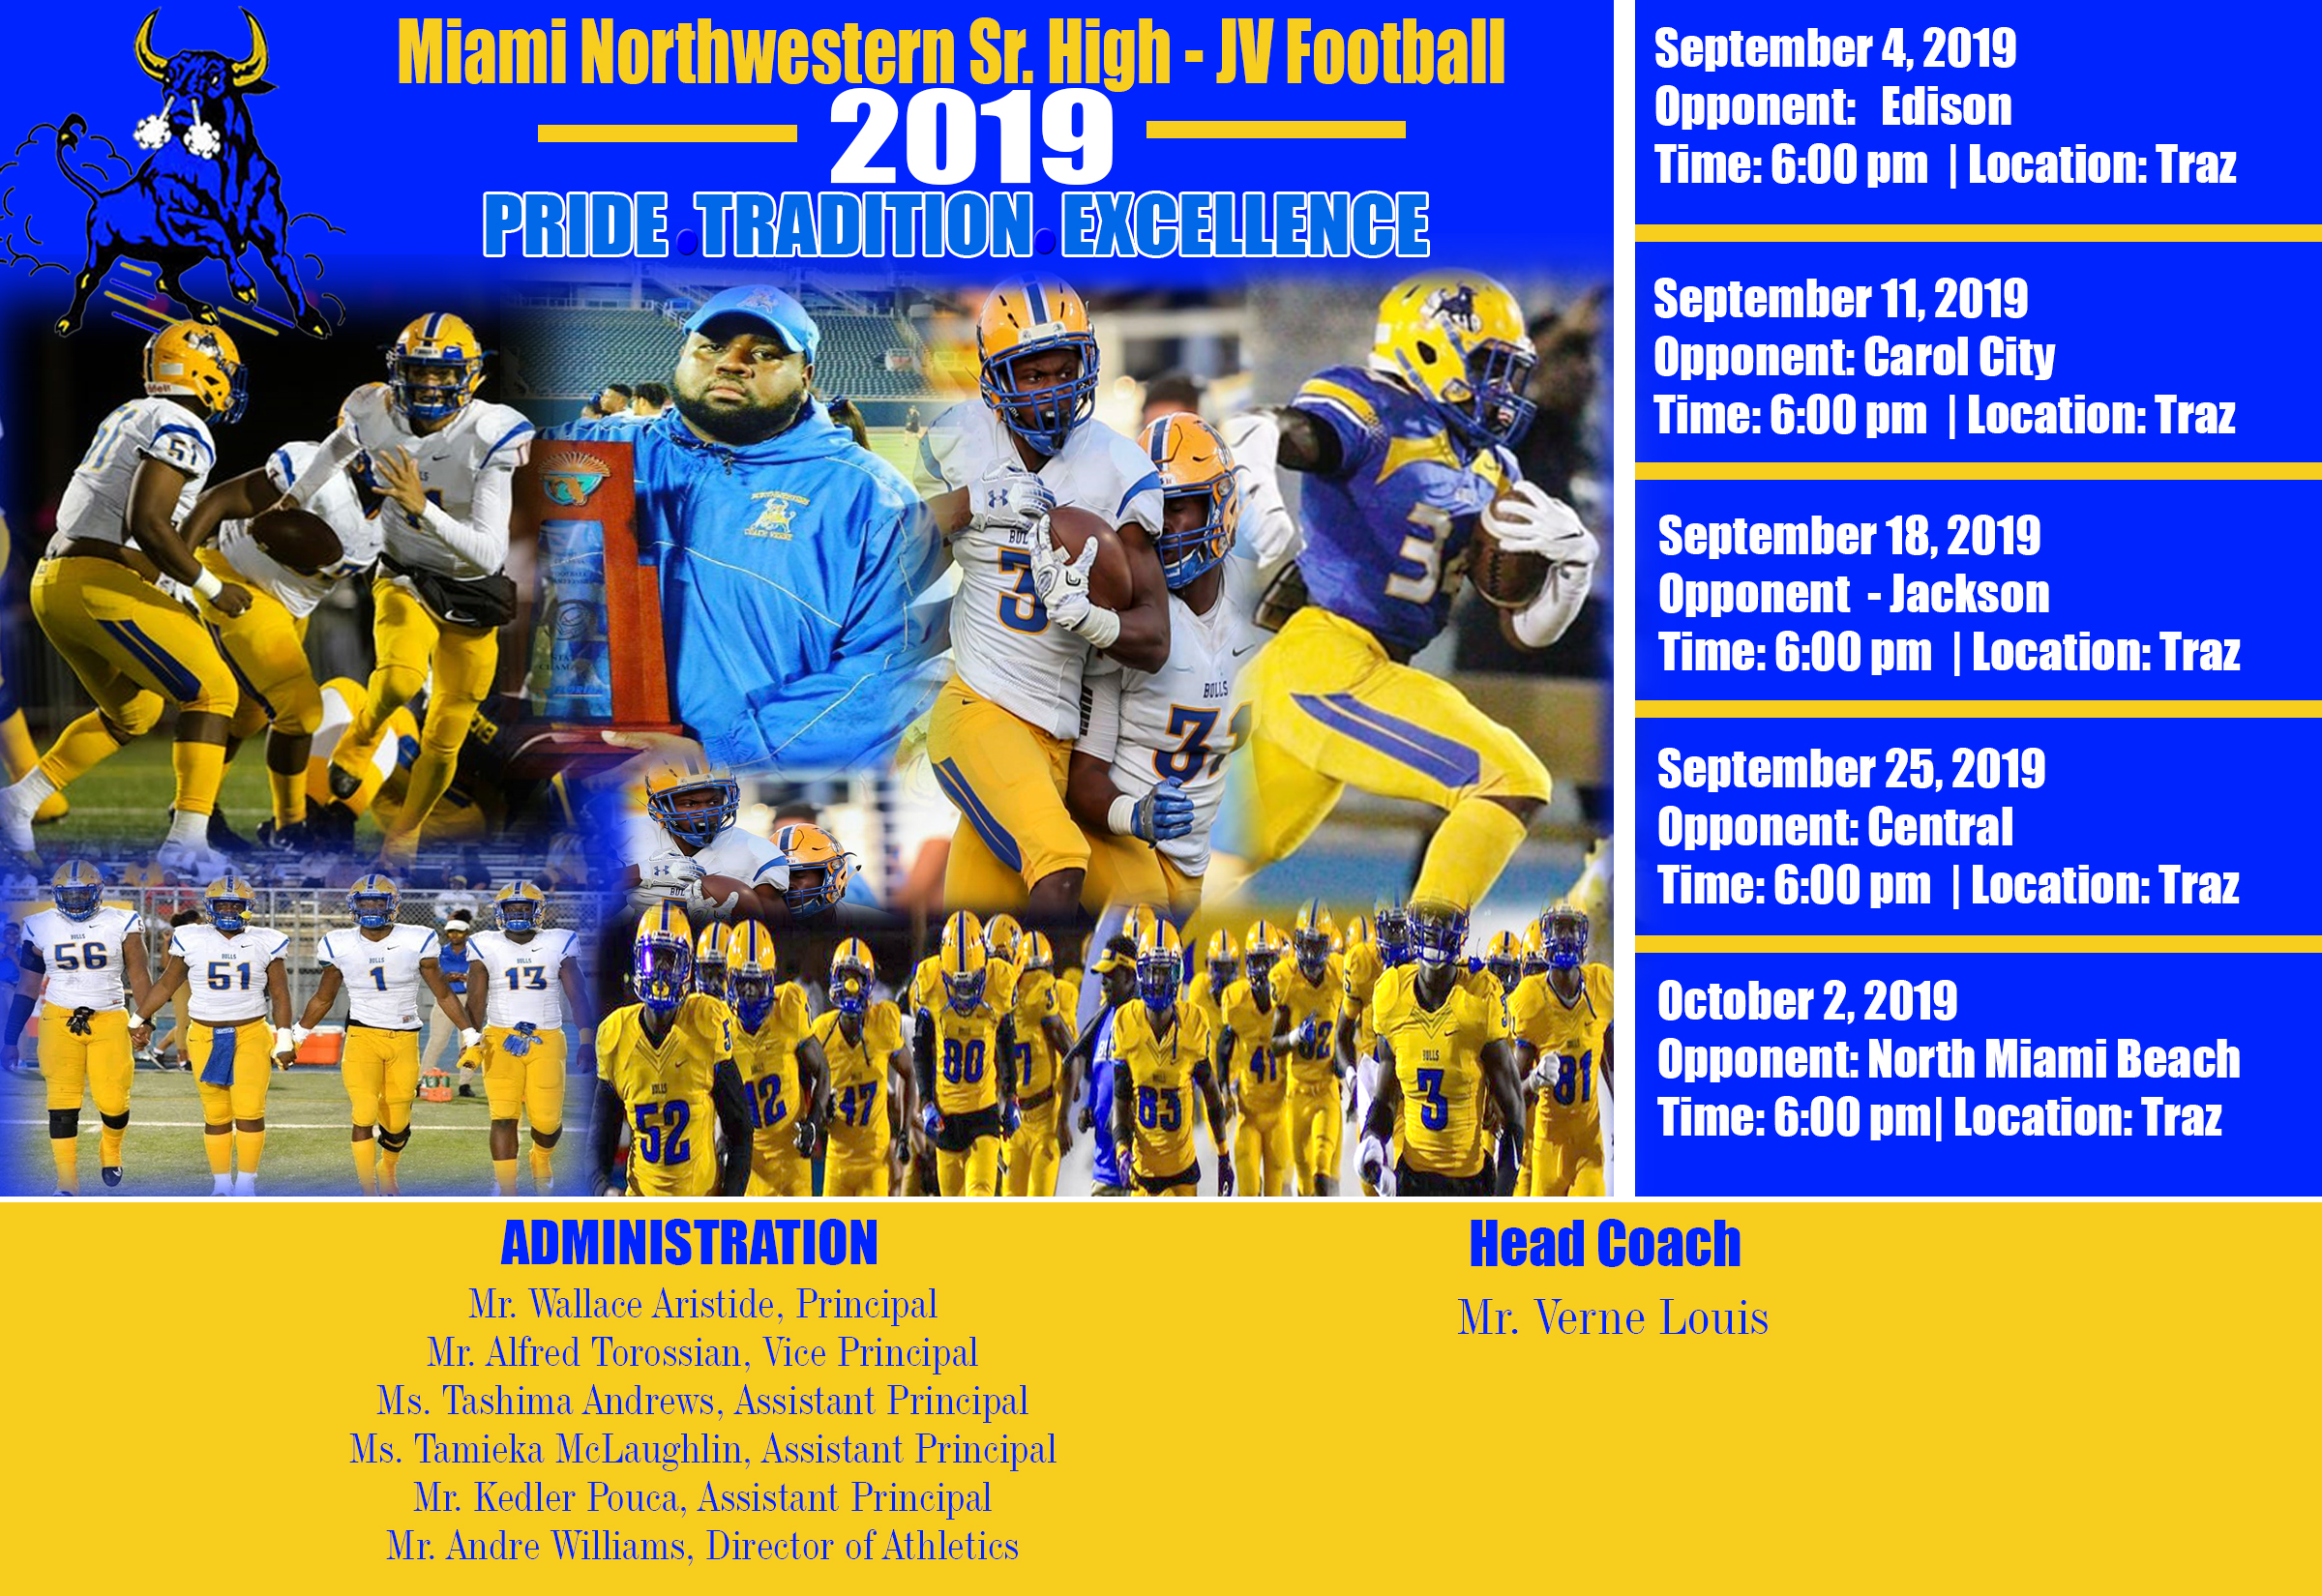 Miami Northwestern Senior High School